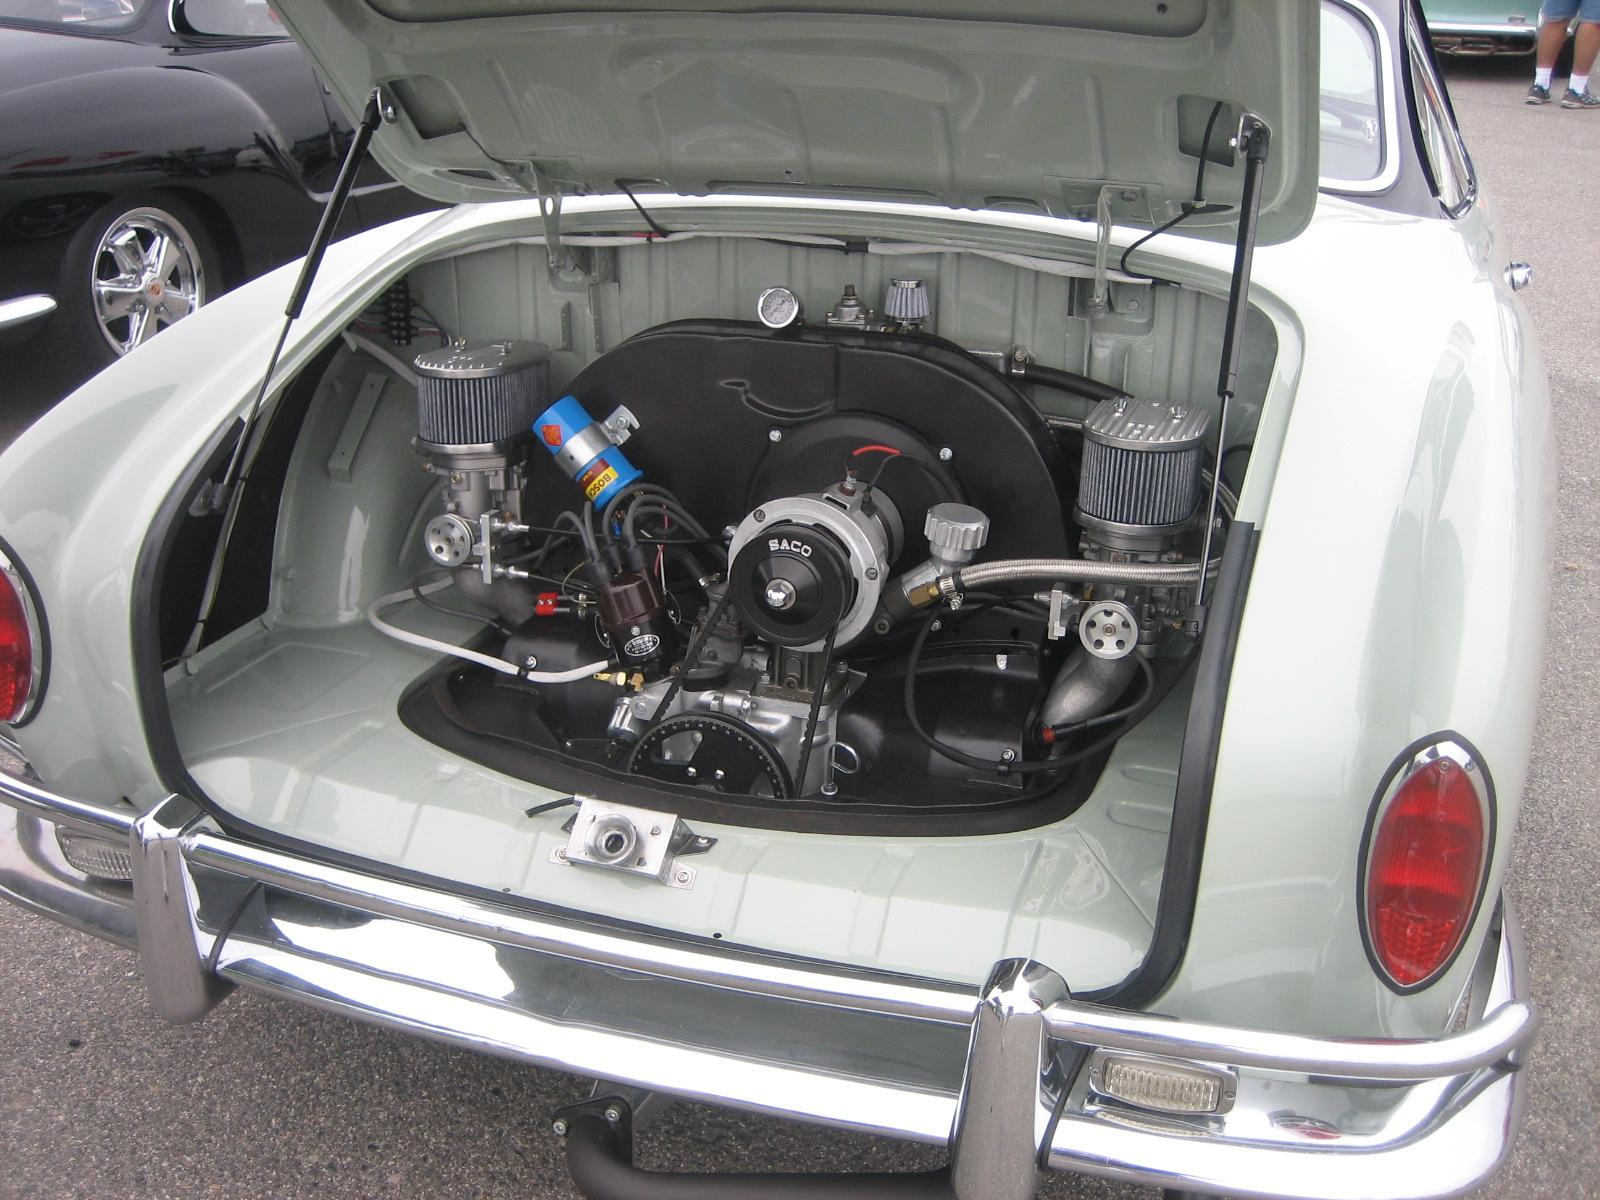 Ghia View Topic Rewiring To A Ez Wire Fuse Box 12 Circuit Harness Image May Have Been Reduced In Size Click Fullscreen